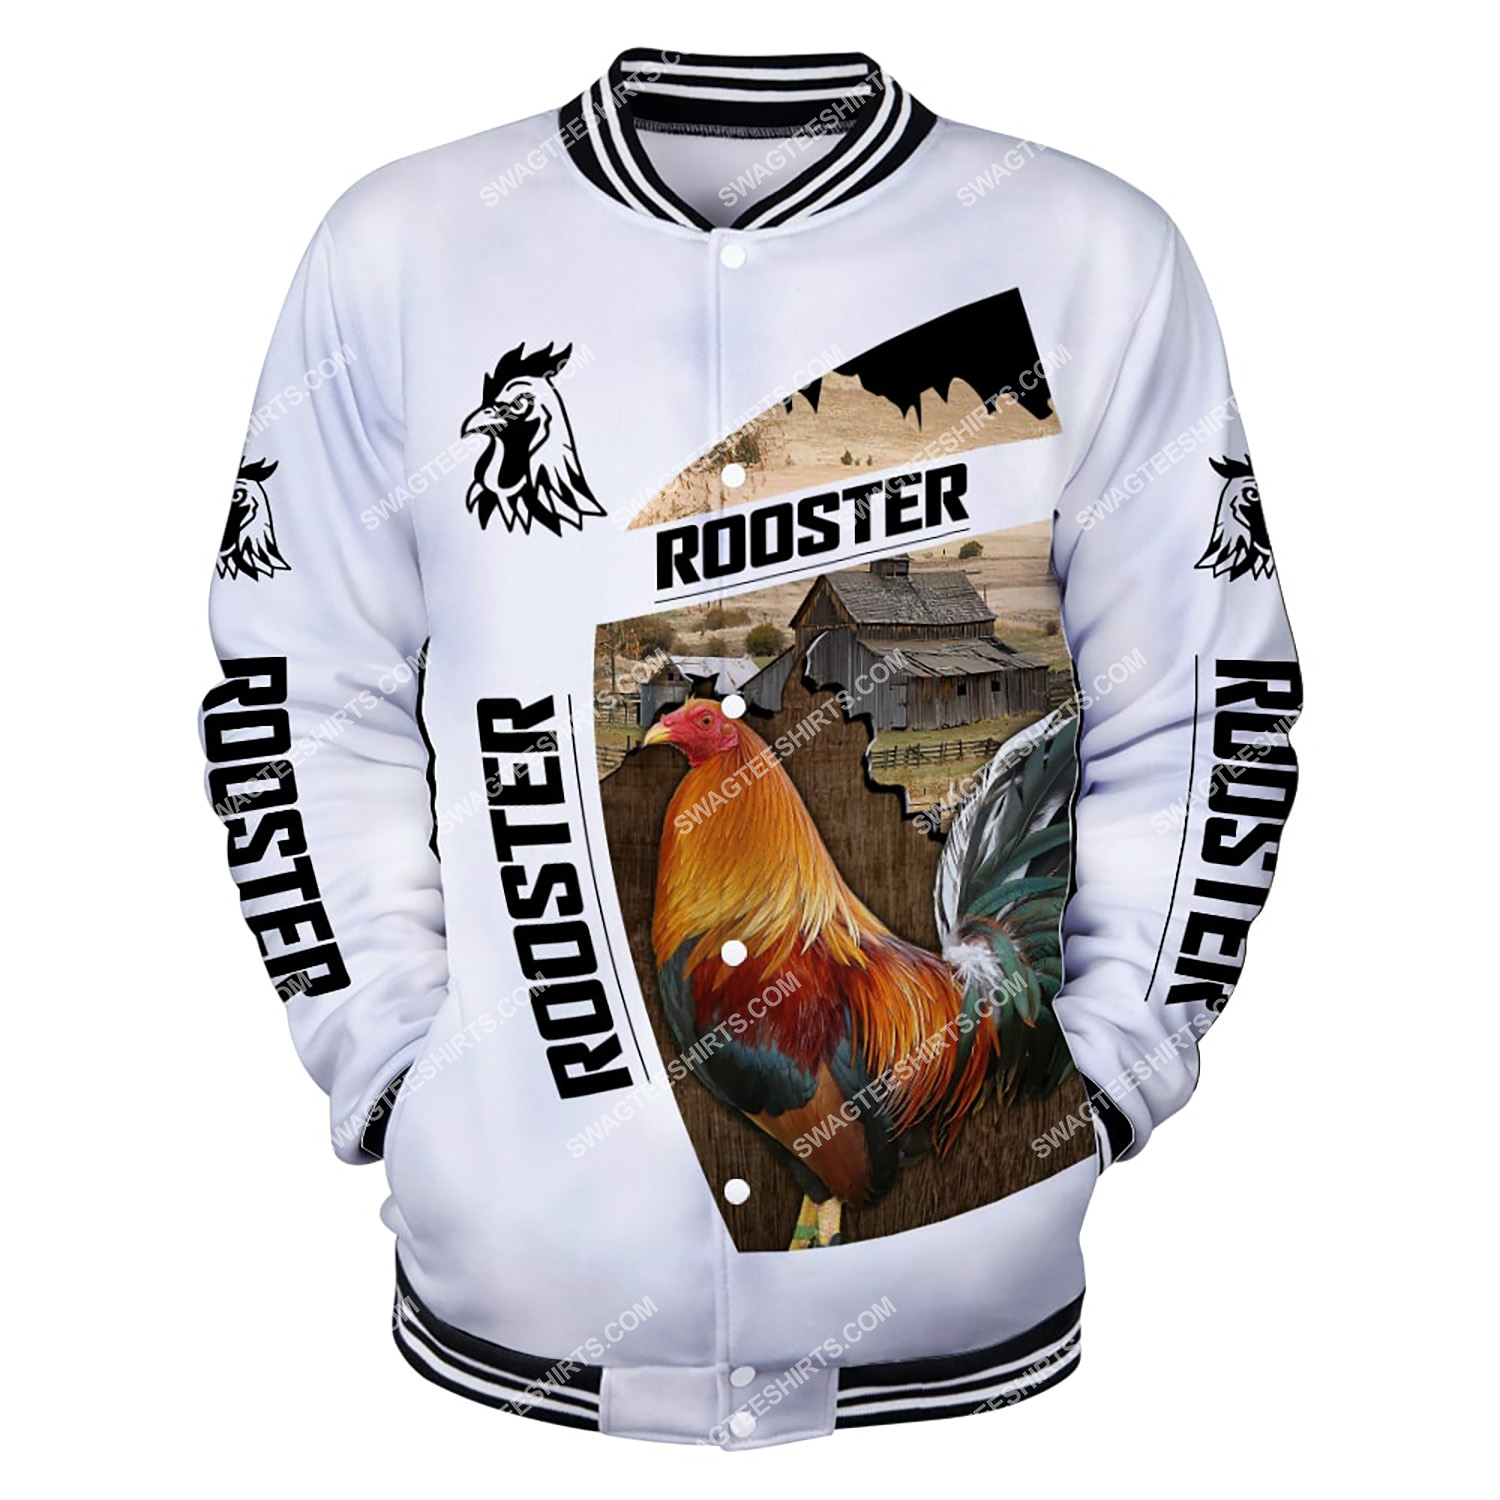 the rooster chicken and farm life full printing baseball jacket 1